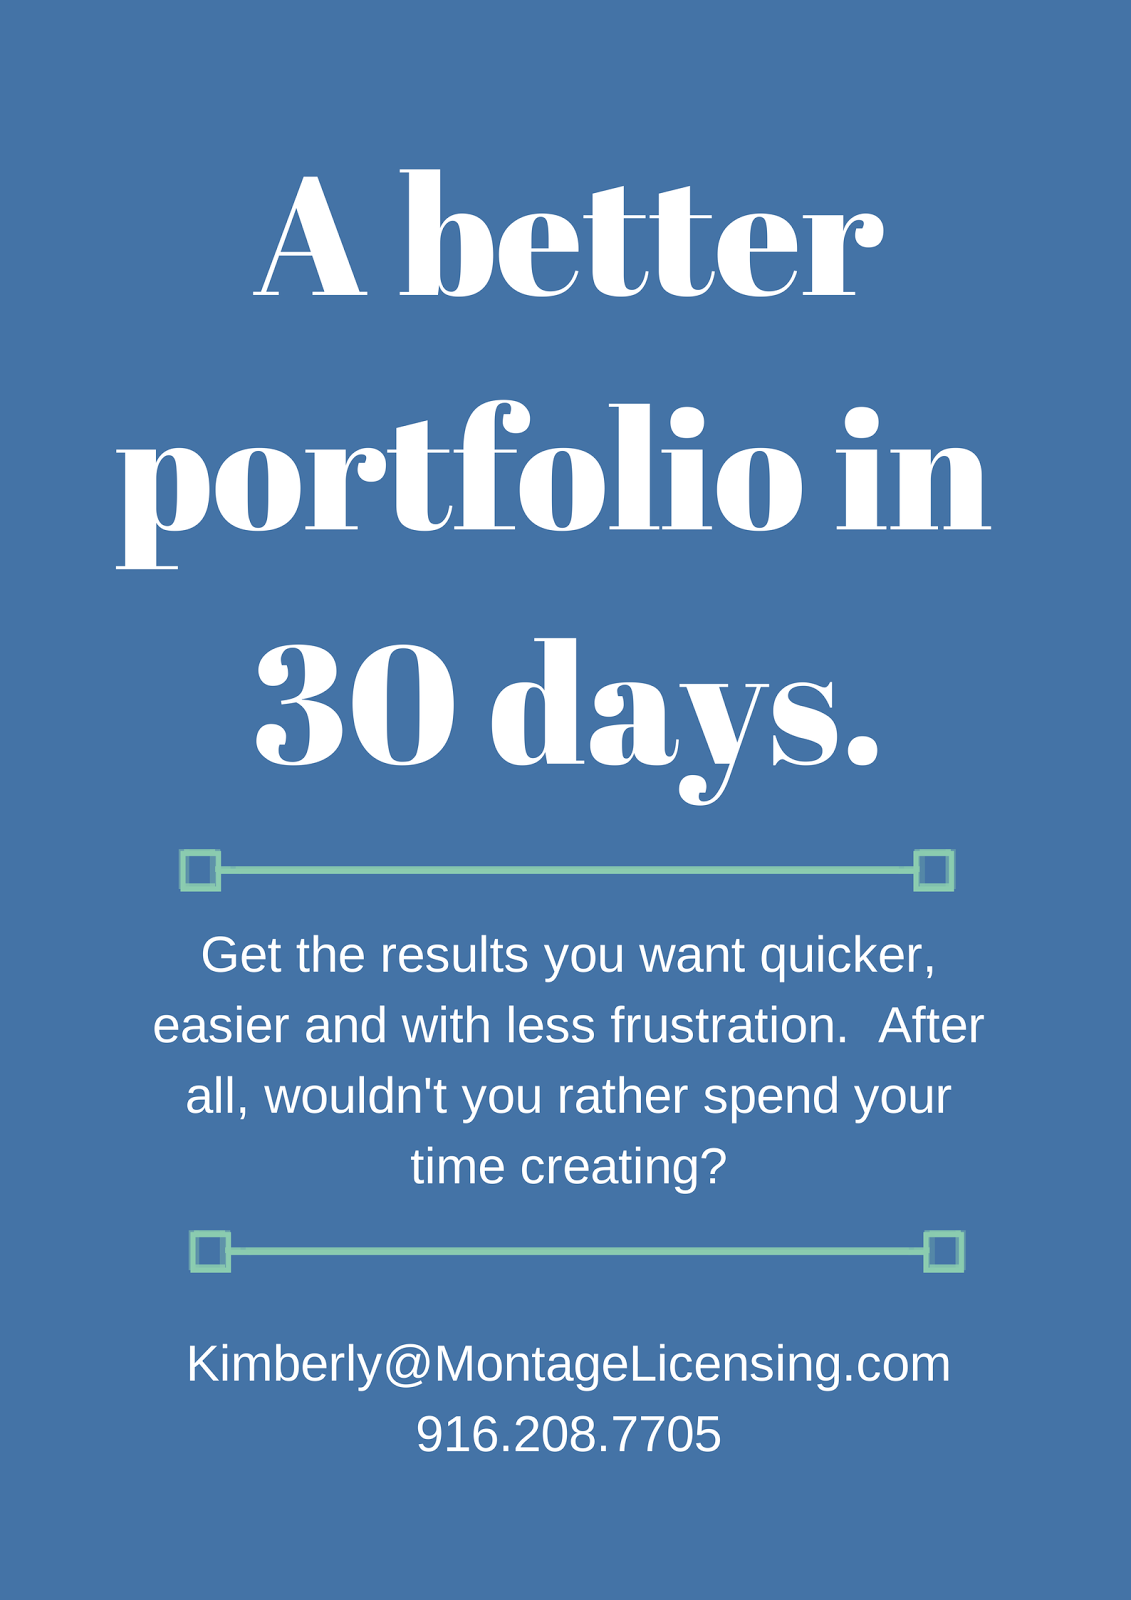 A Better Portfolio in 30 Days